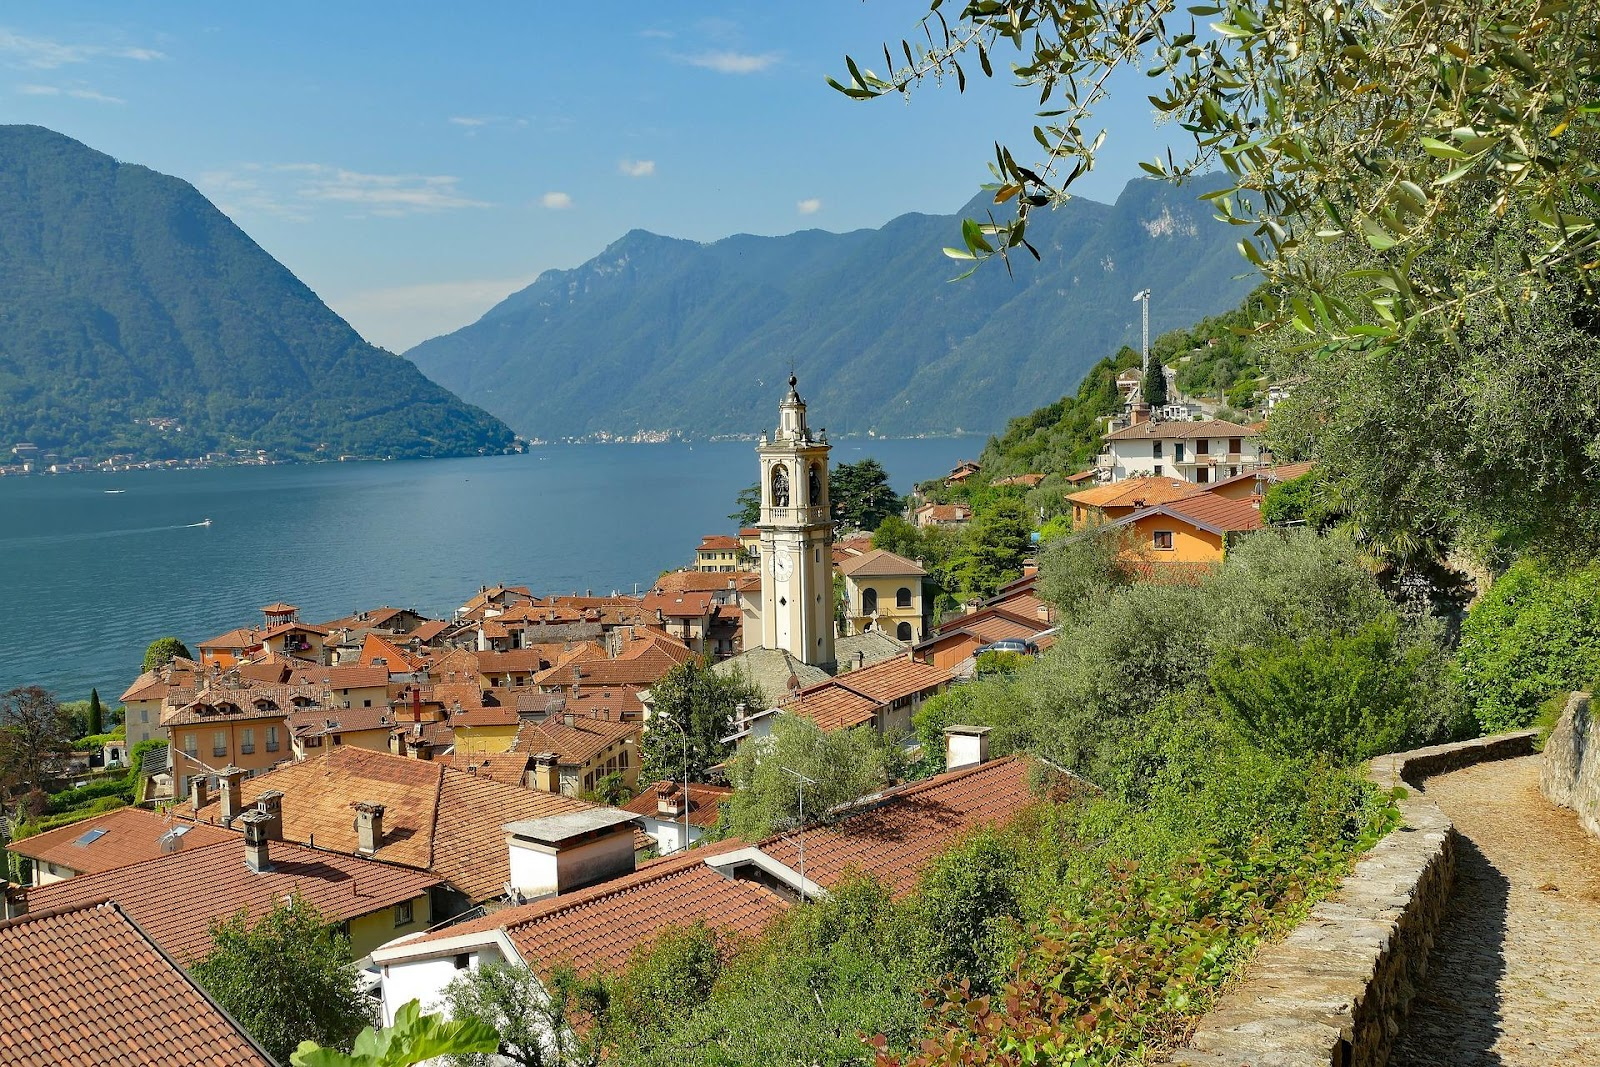 traditional medieval italian hillside village overlooking lake como blue water surrounded by mountains on a clear day